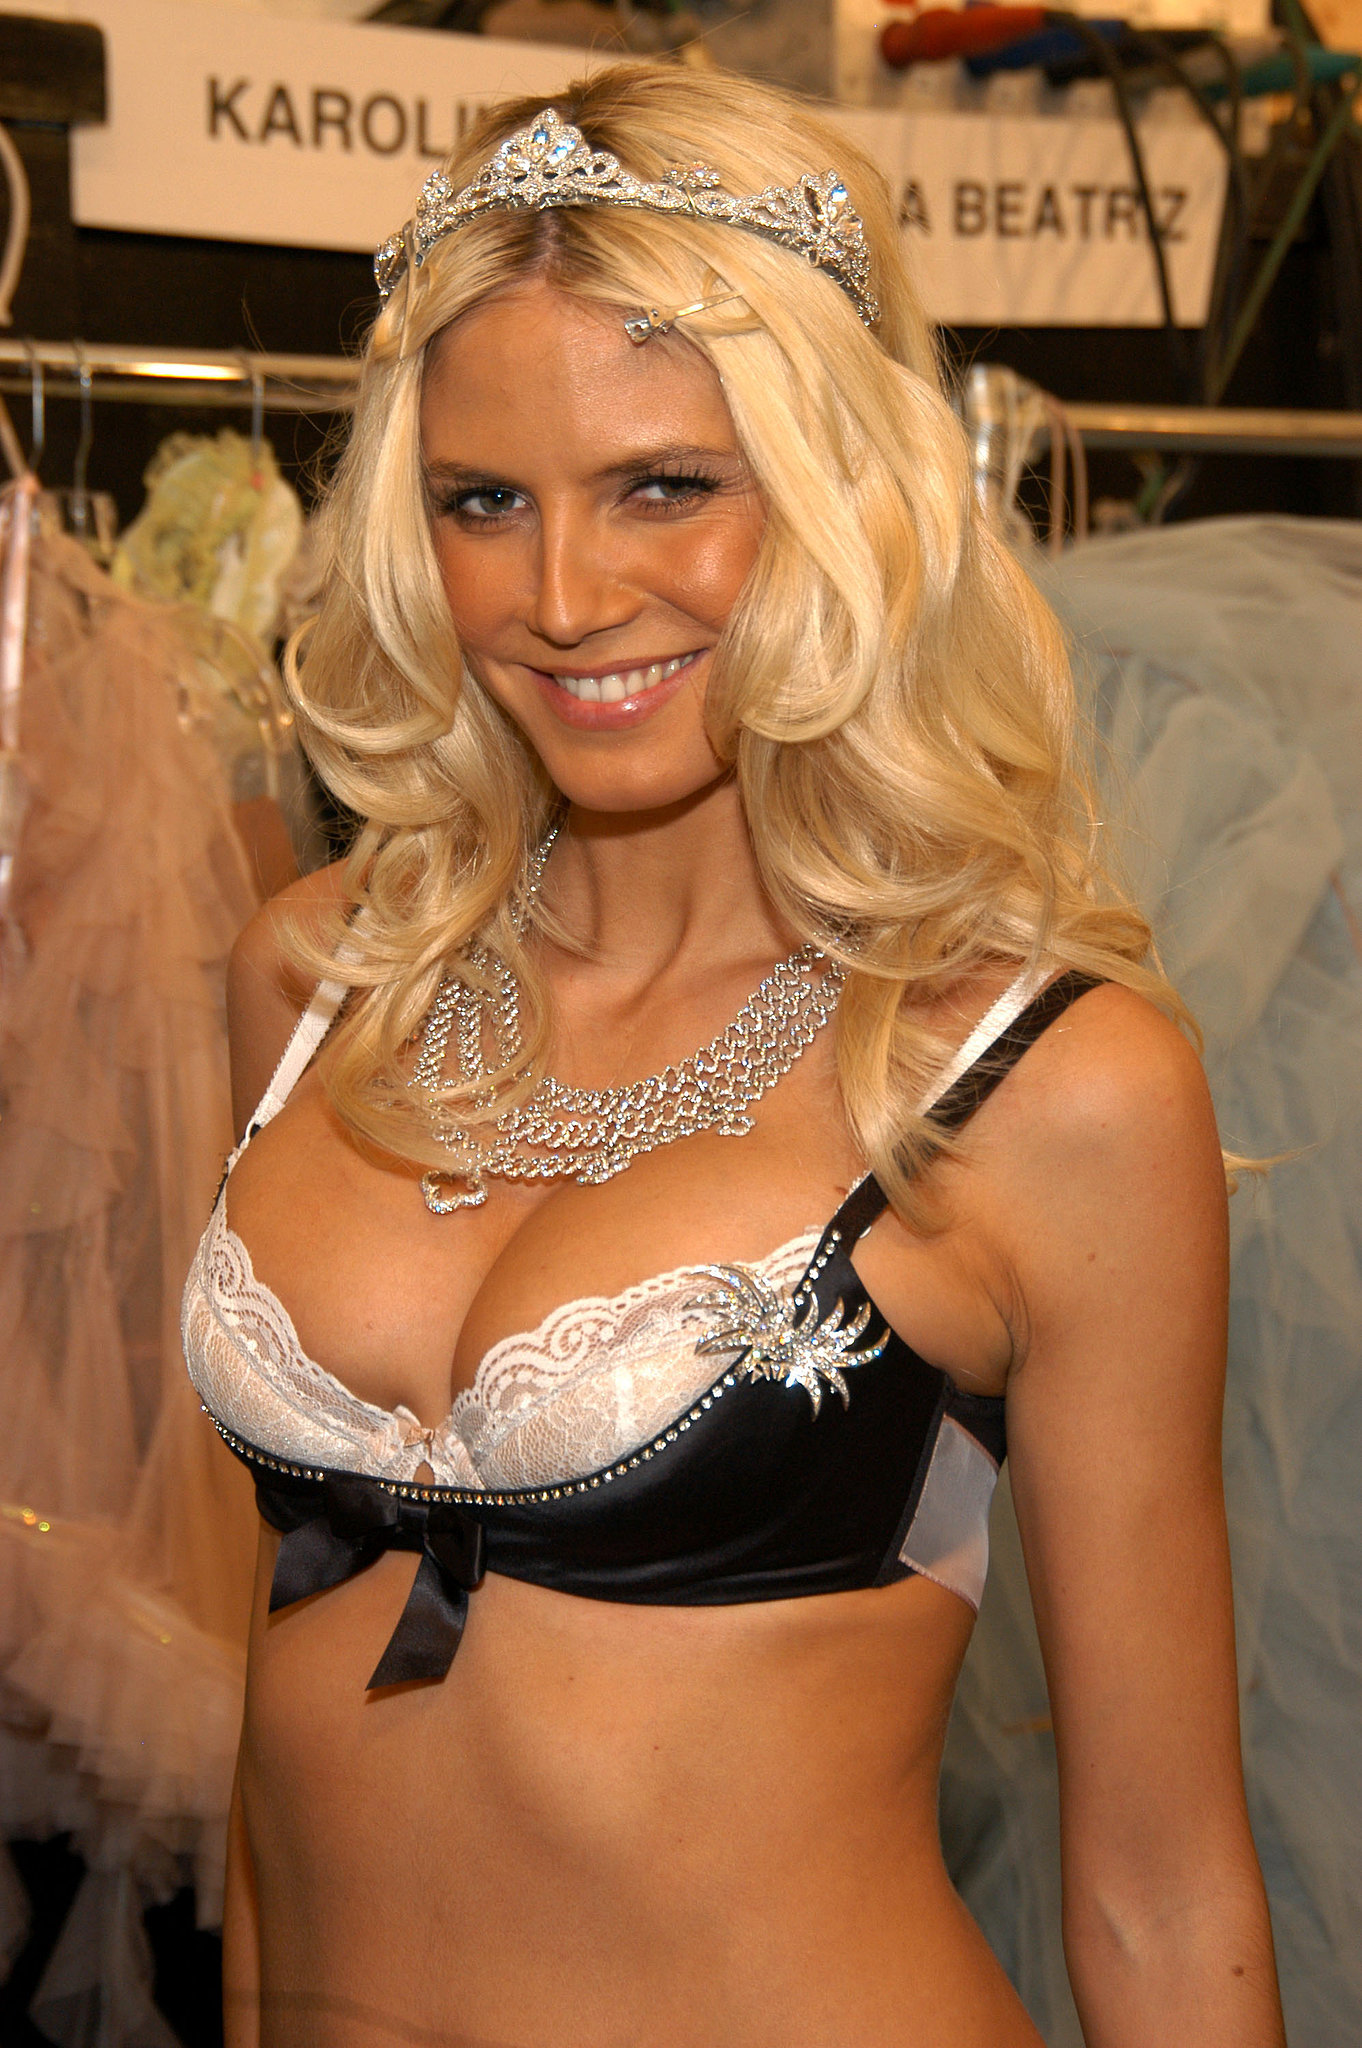 Heidi sported a diamond tiara and Million Dollar Bra in 2003.